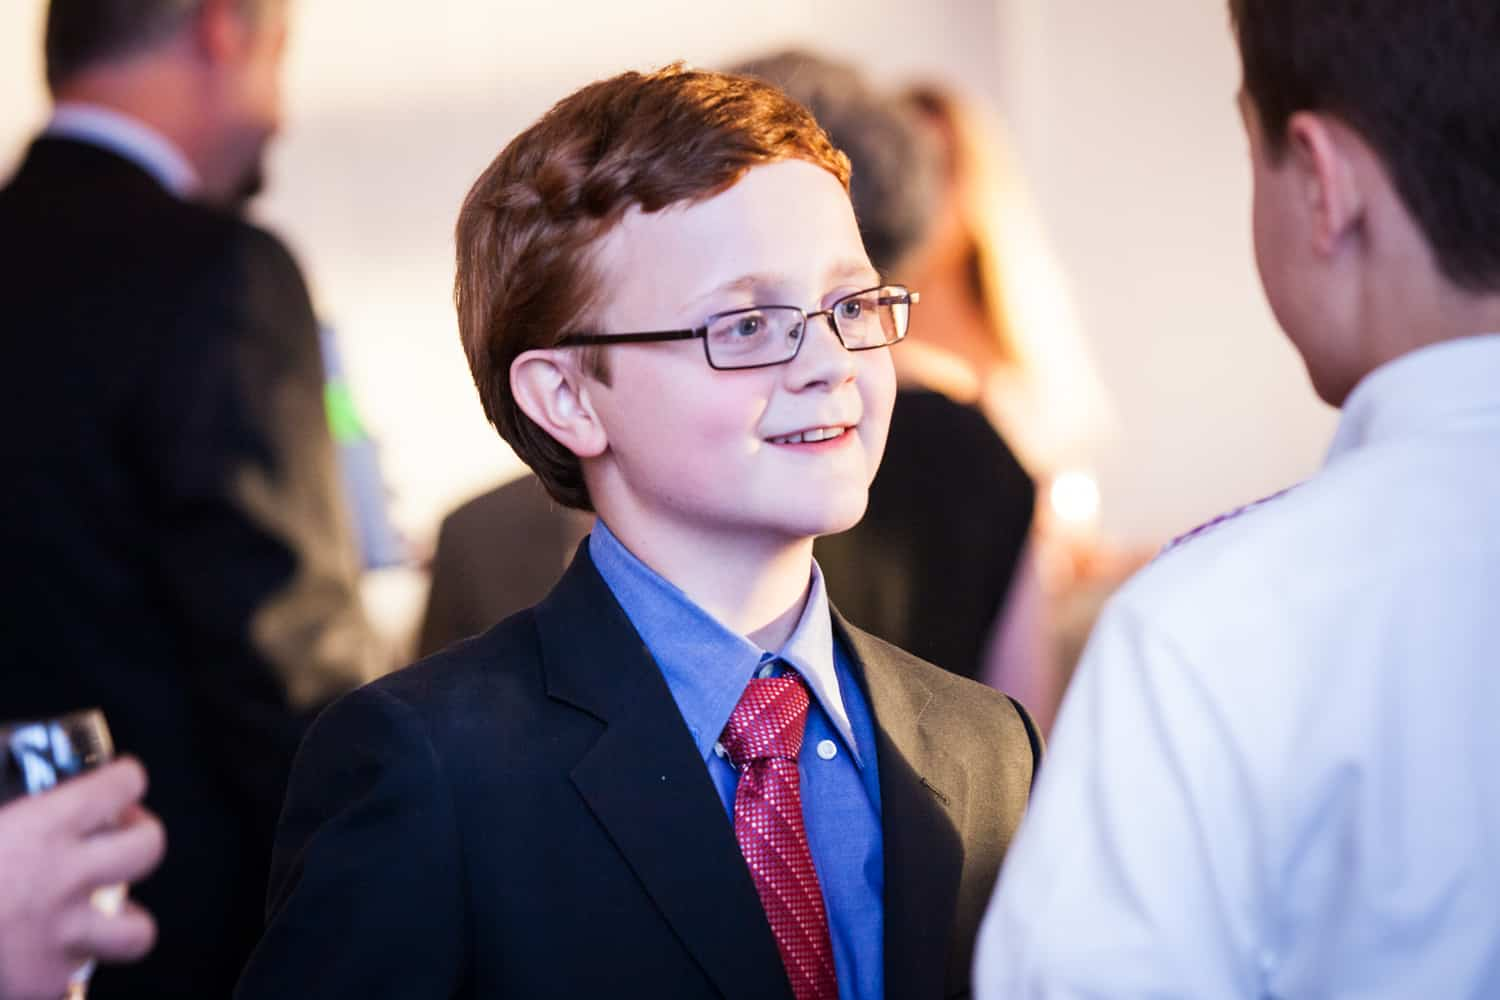 Birthday boy at a bar mitzvah for an article on how to plan the perfect bar mitzvah